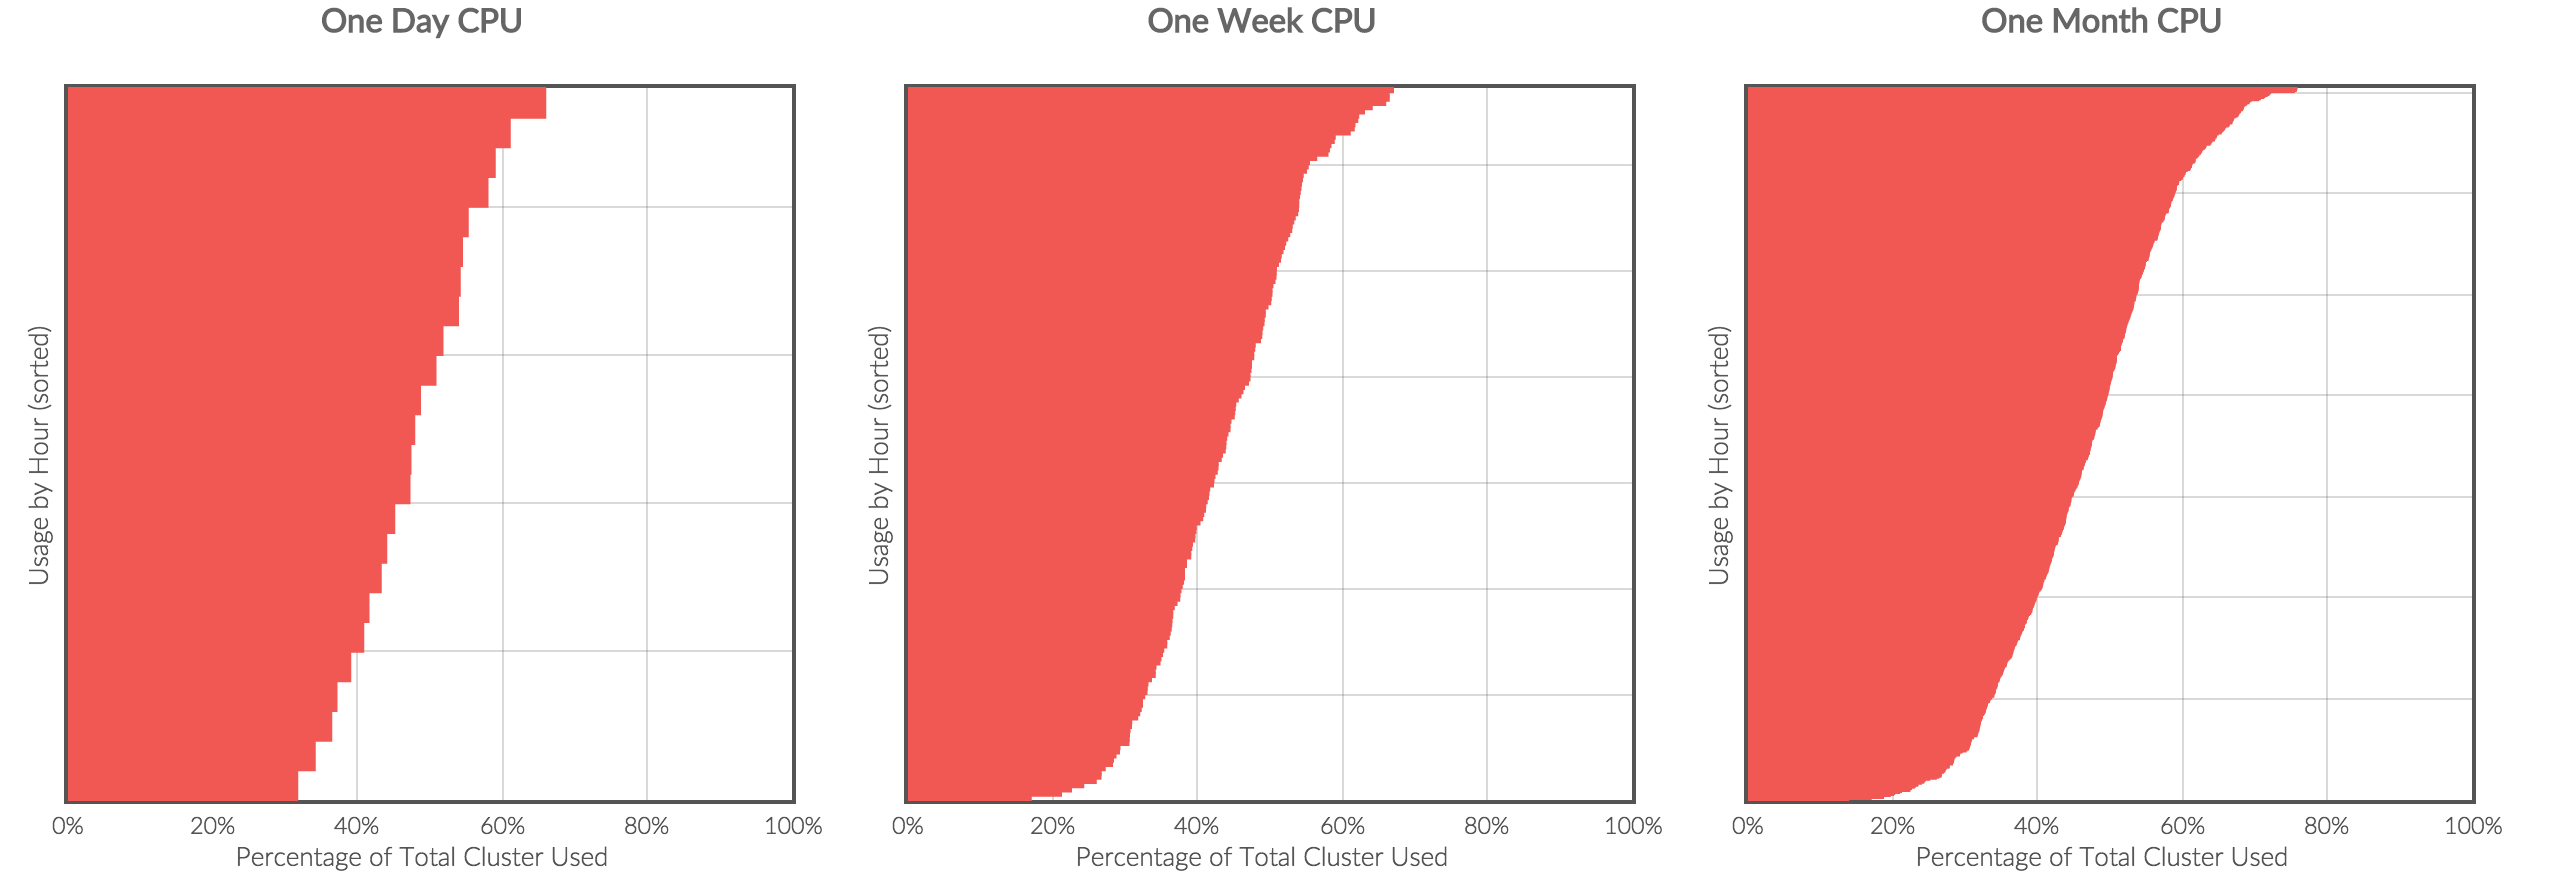 Below is another image from the Pepperdata Dashboard that shows CPU utilization for a day, a week and a month, sorted from highest to lowest on percent of utilization.